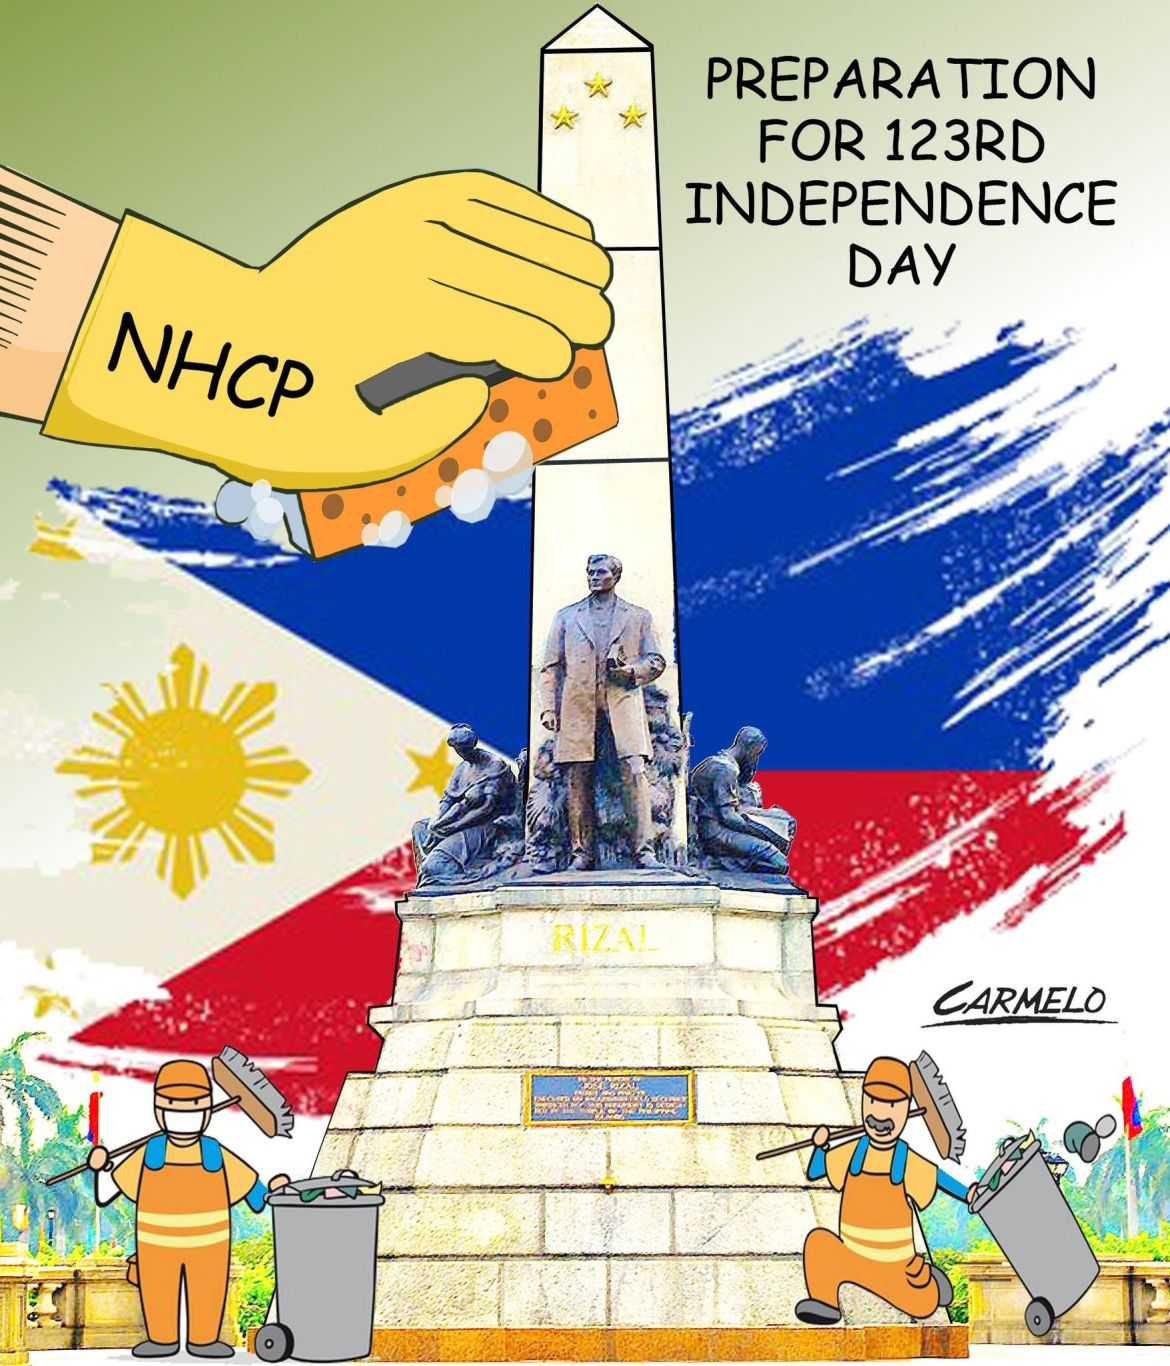 'Getting ready for PH's 123rd Independence Day'